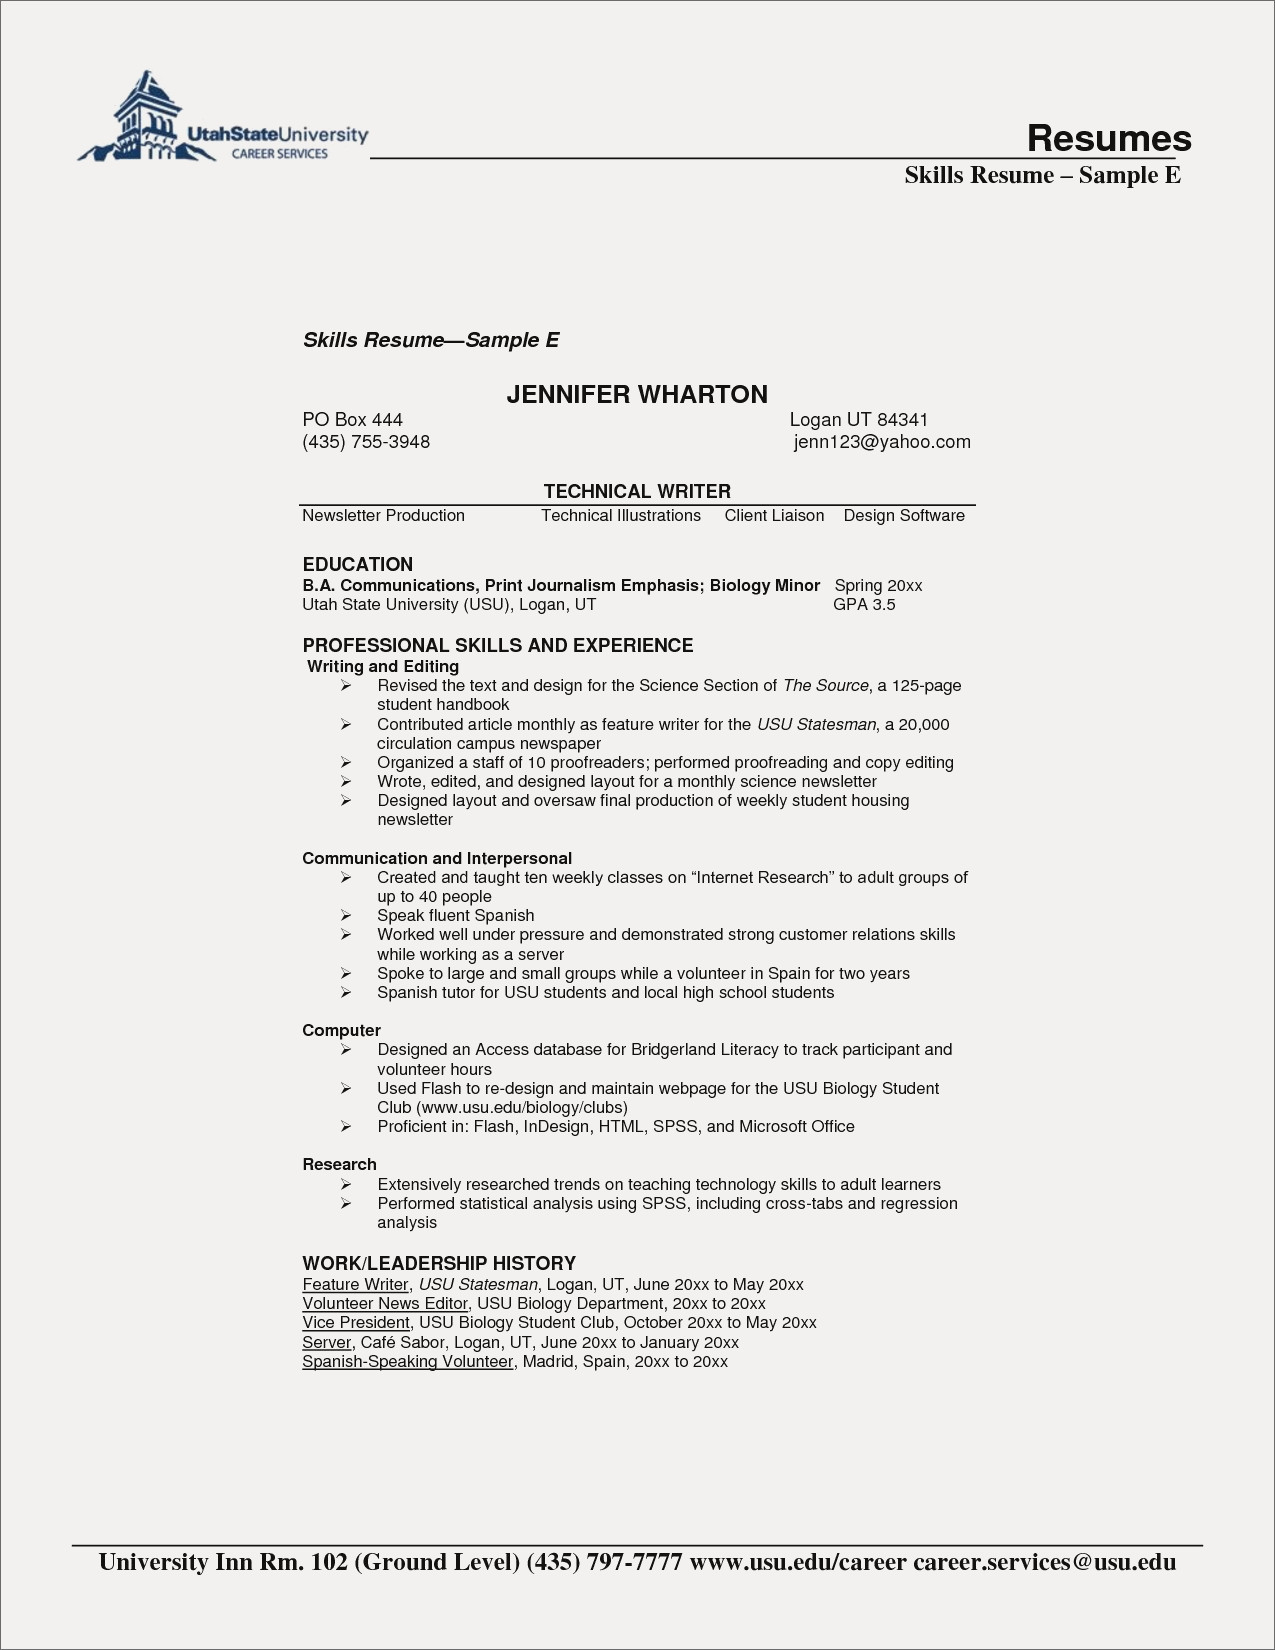 Picture Of A Resume - Cheap Resumes Fresh Puter Skills Example Unique Examples Resumes